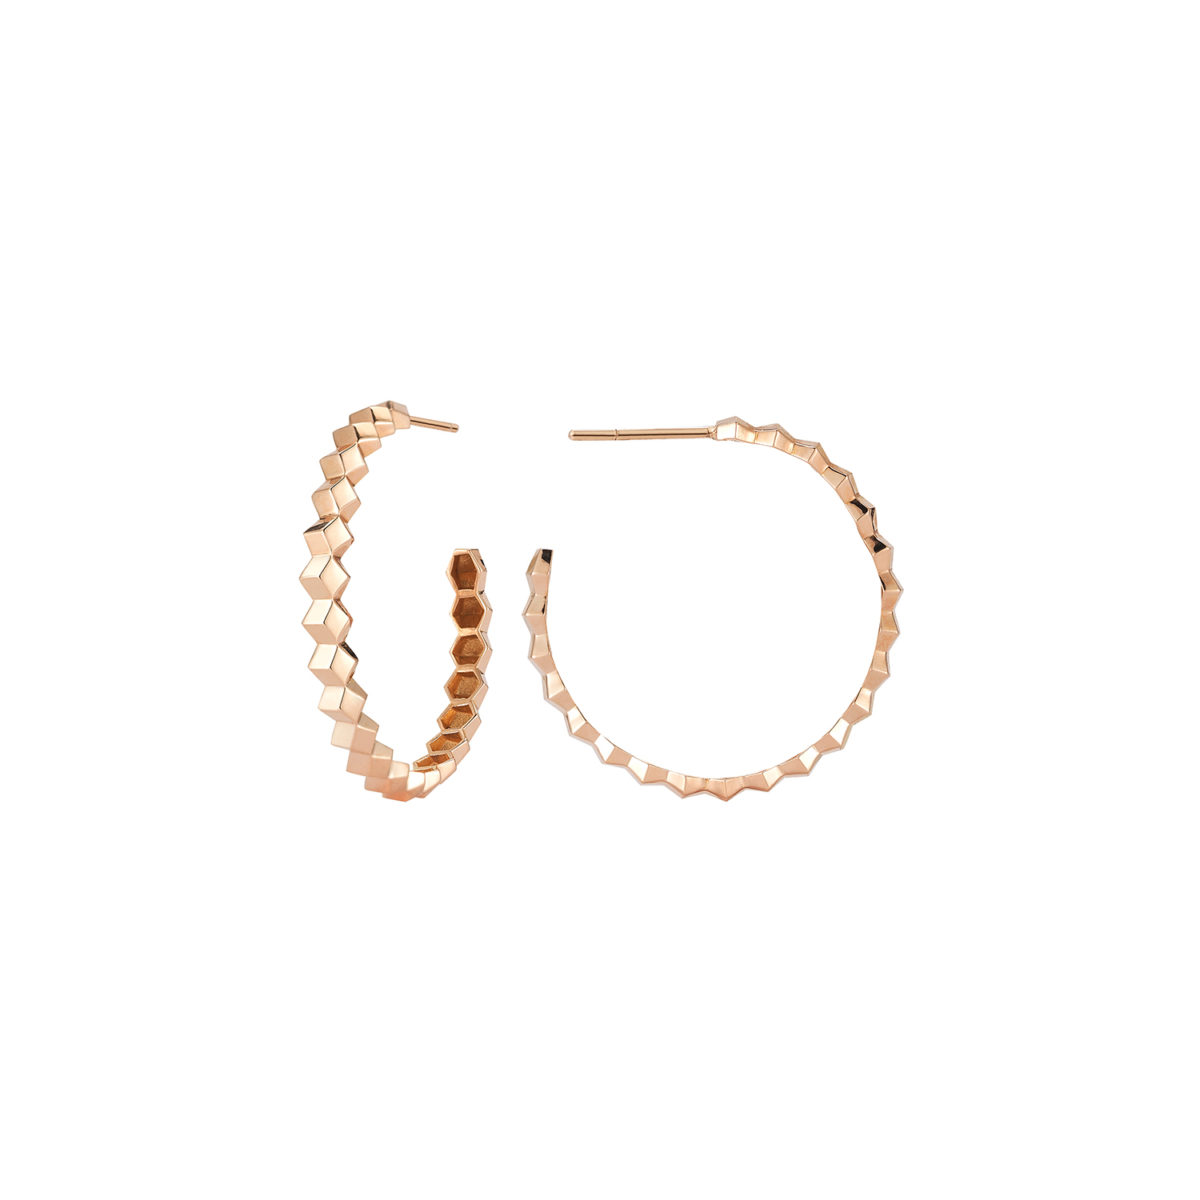 Paolo Costagli Brillante Hoop Earrings in Rose Gold Marshall